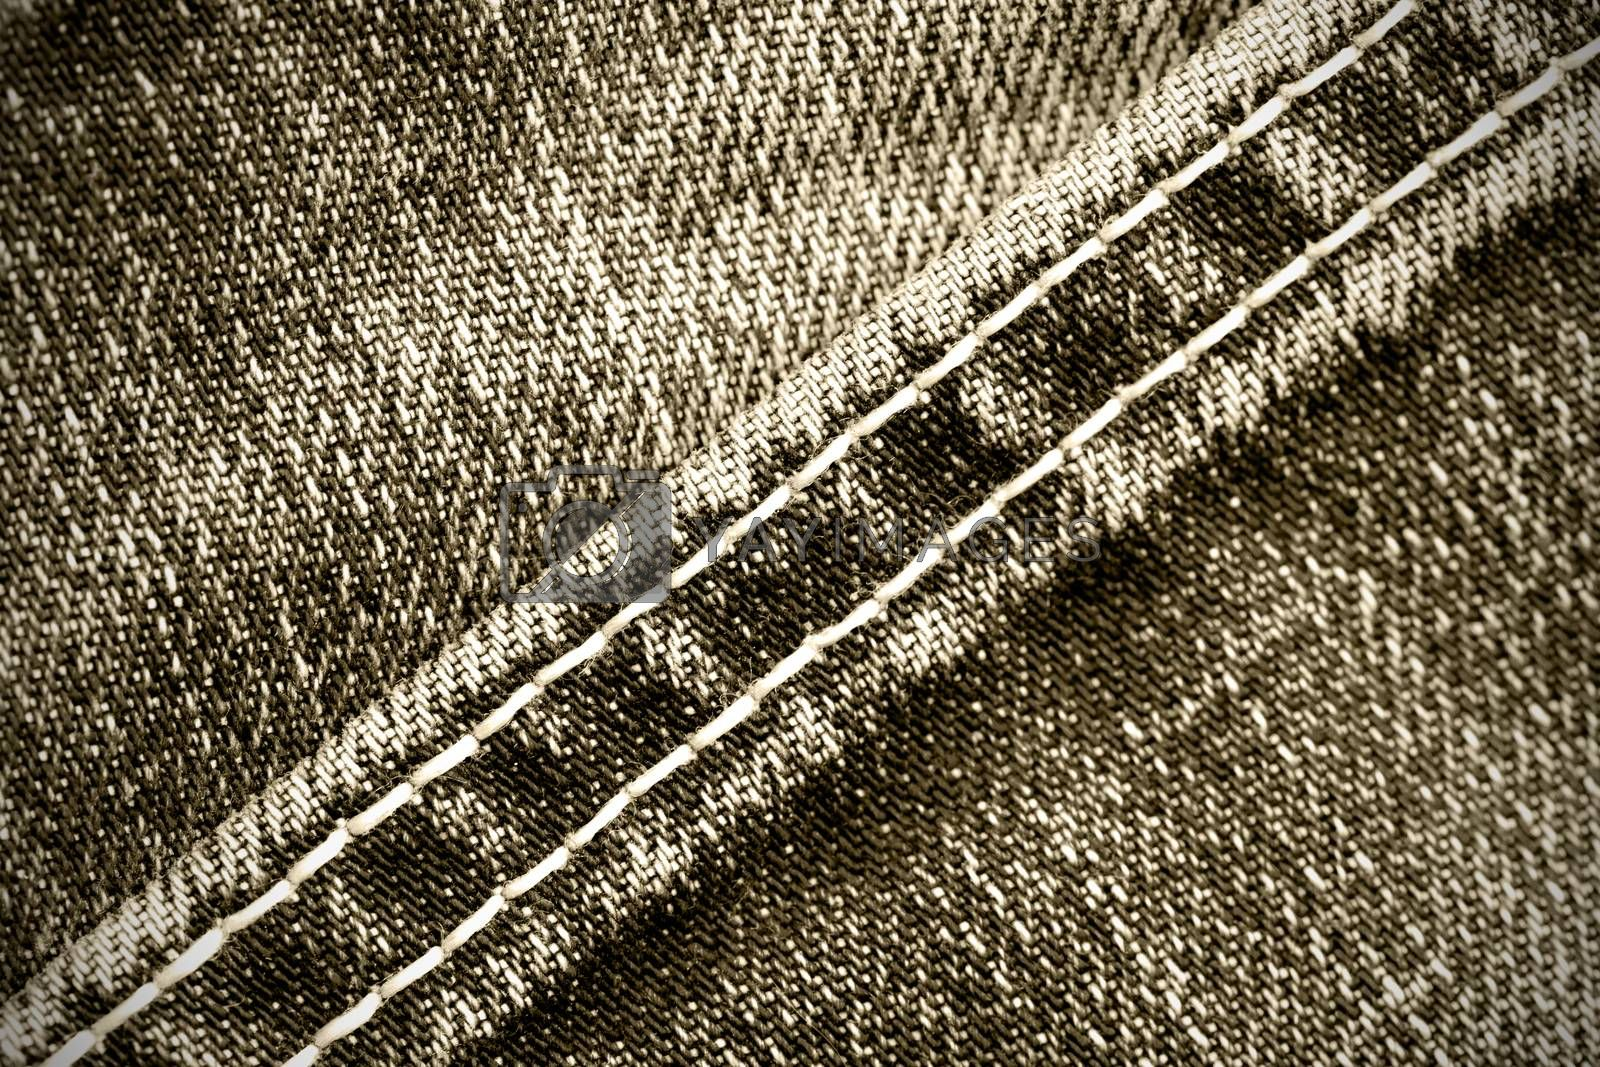 Royalty free image of part of old jeans background with diagonal seams by Astroid